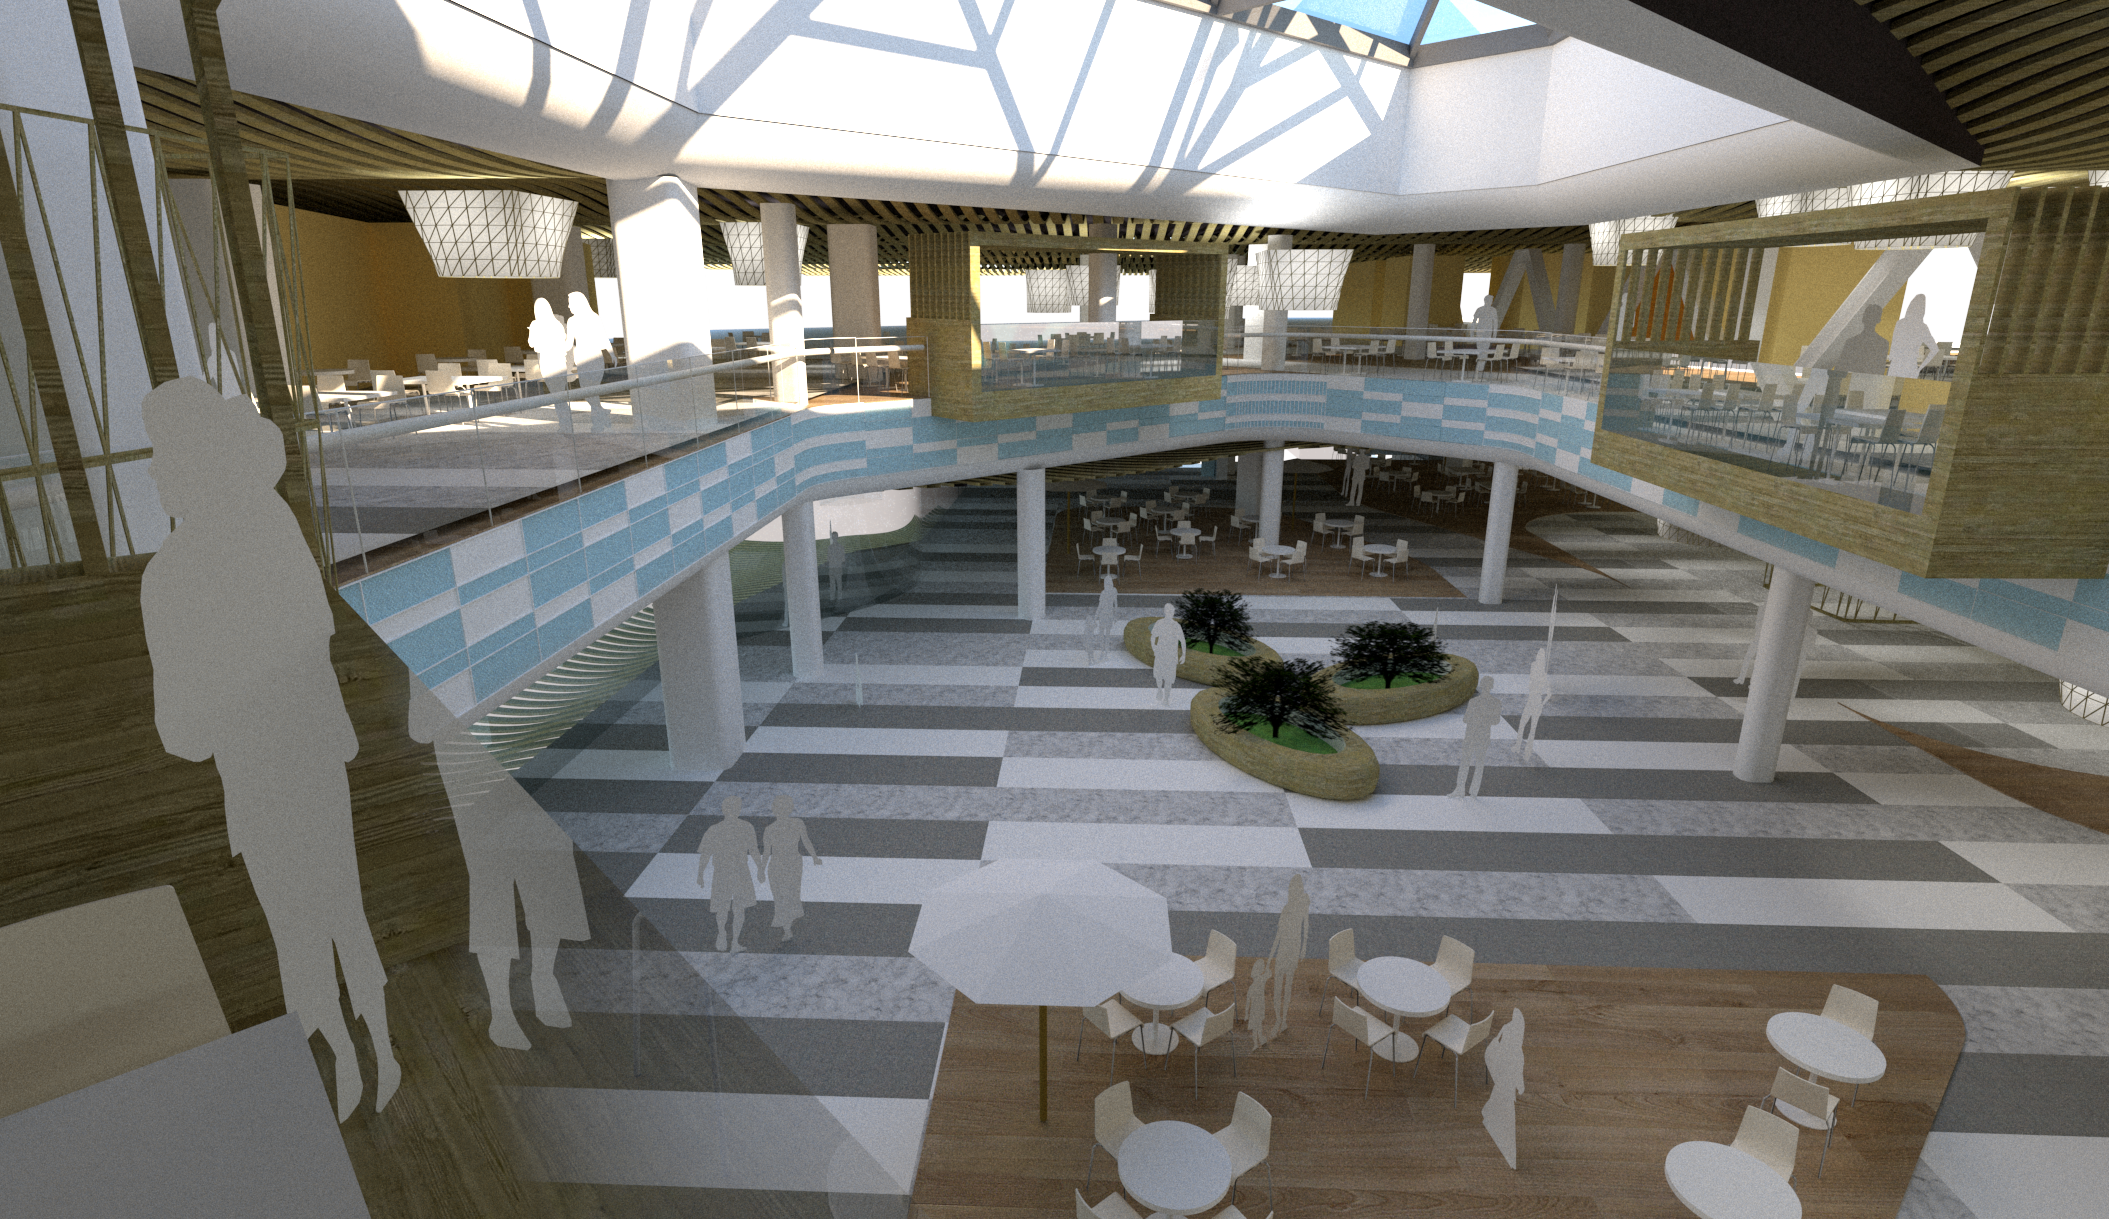 Latest rendering 2.png